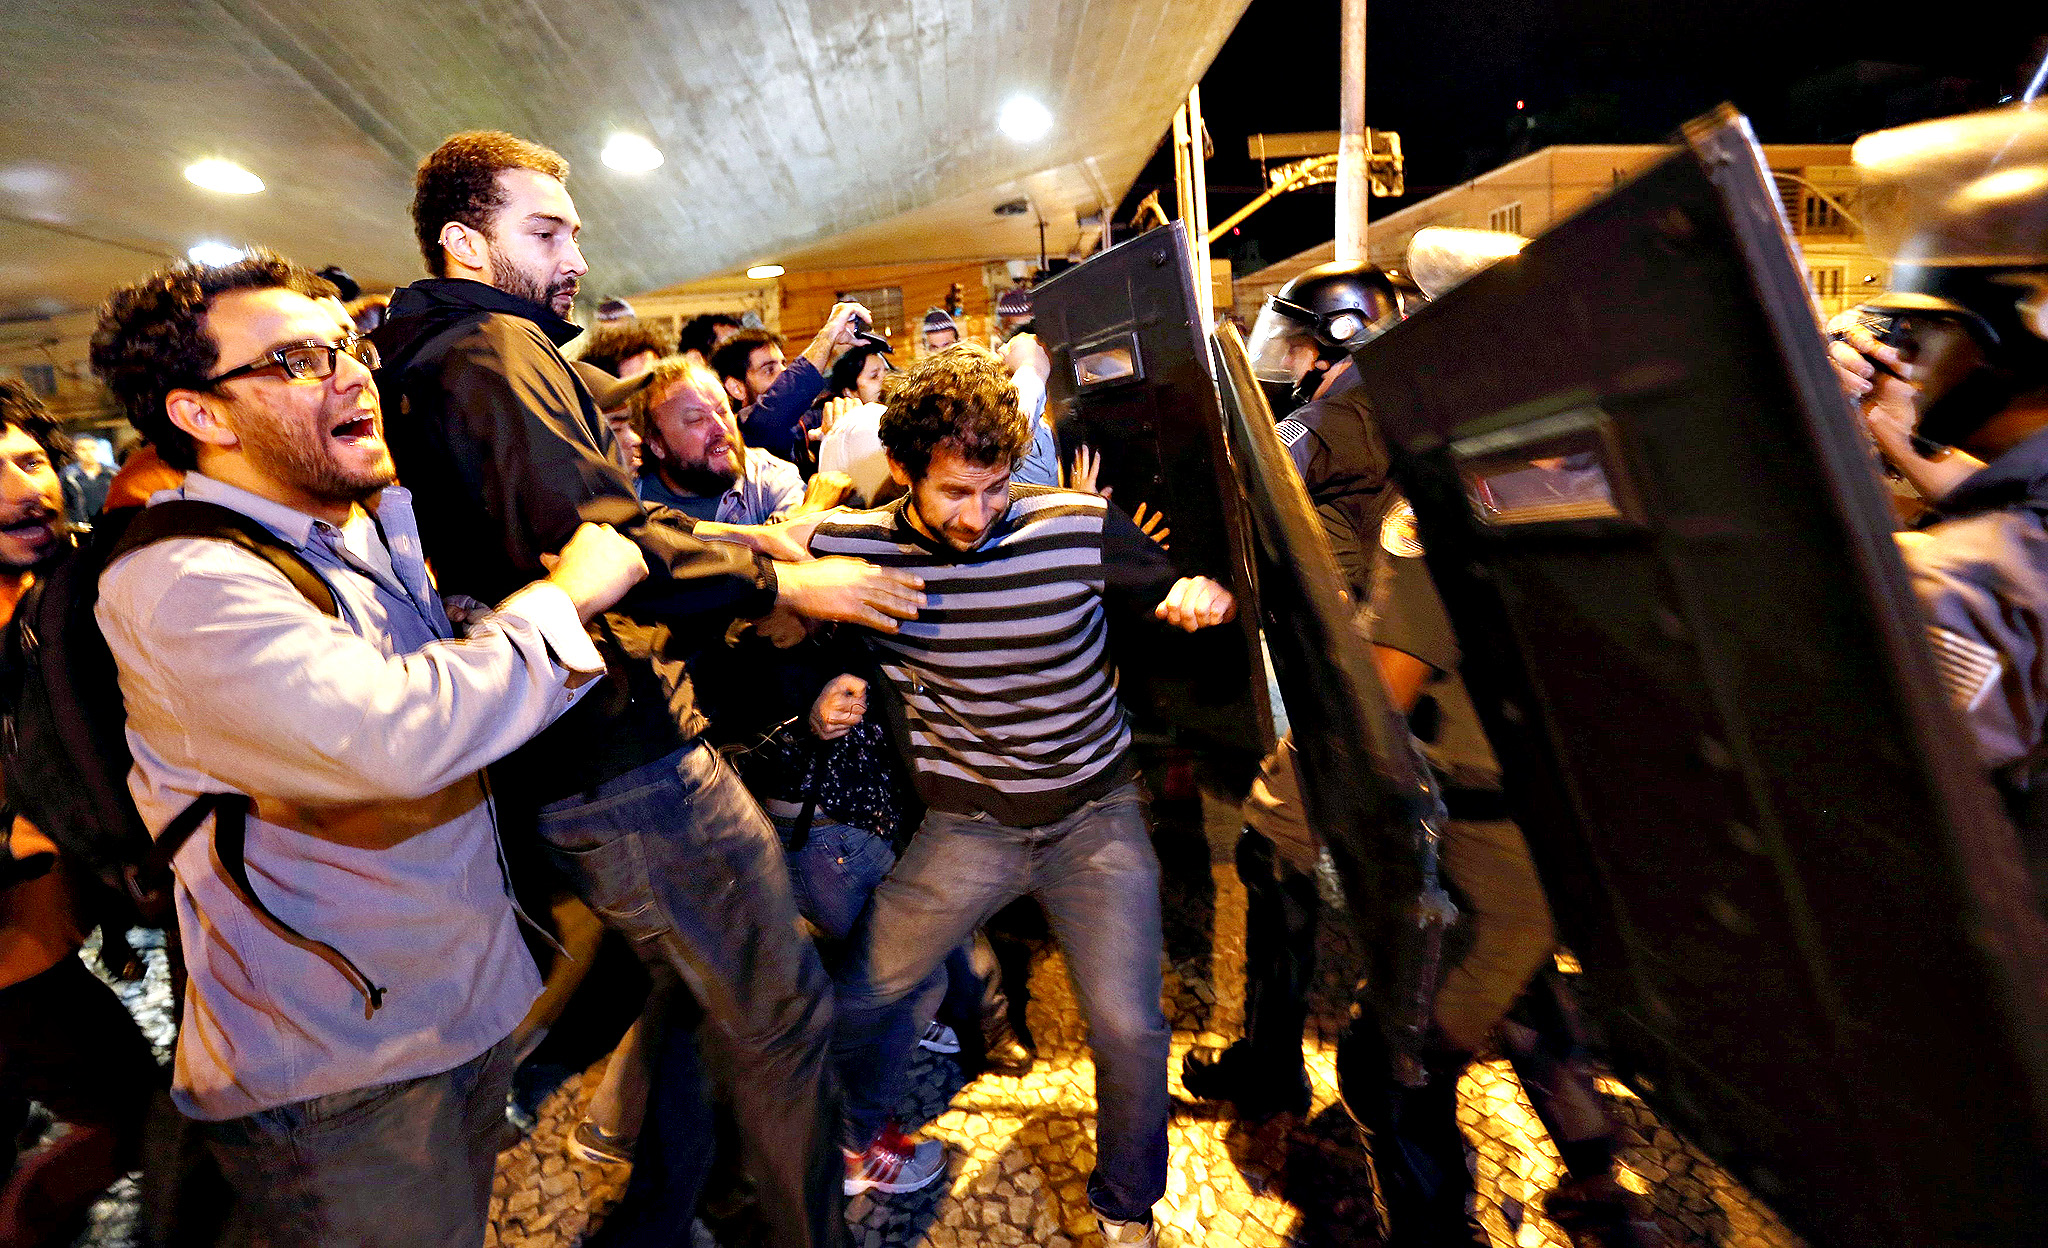 Protesters scuffle with police outside the closed entrance of Ana Rosa subway station during the fifth day of metro worker's protest in Sao Paulo June 9, 2014. A court set a 500,000 reais penalty ($223,000) for each day they stay off work from Monday and also declared the strike illegal, complicating preparations for the World Cup opening match.